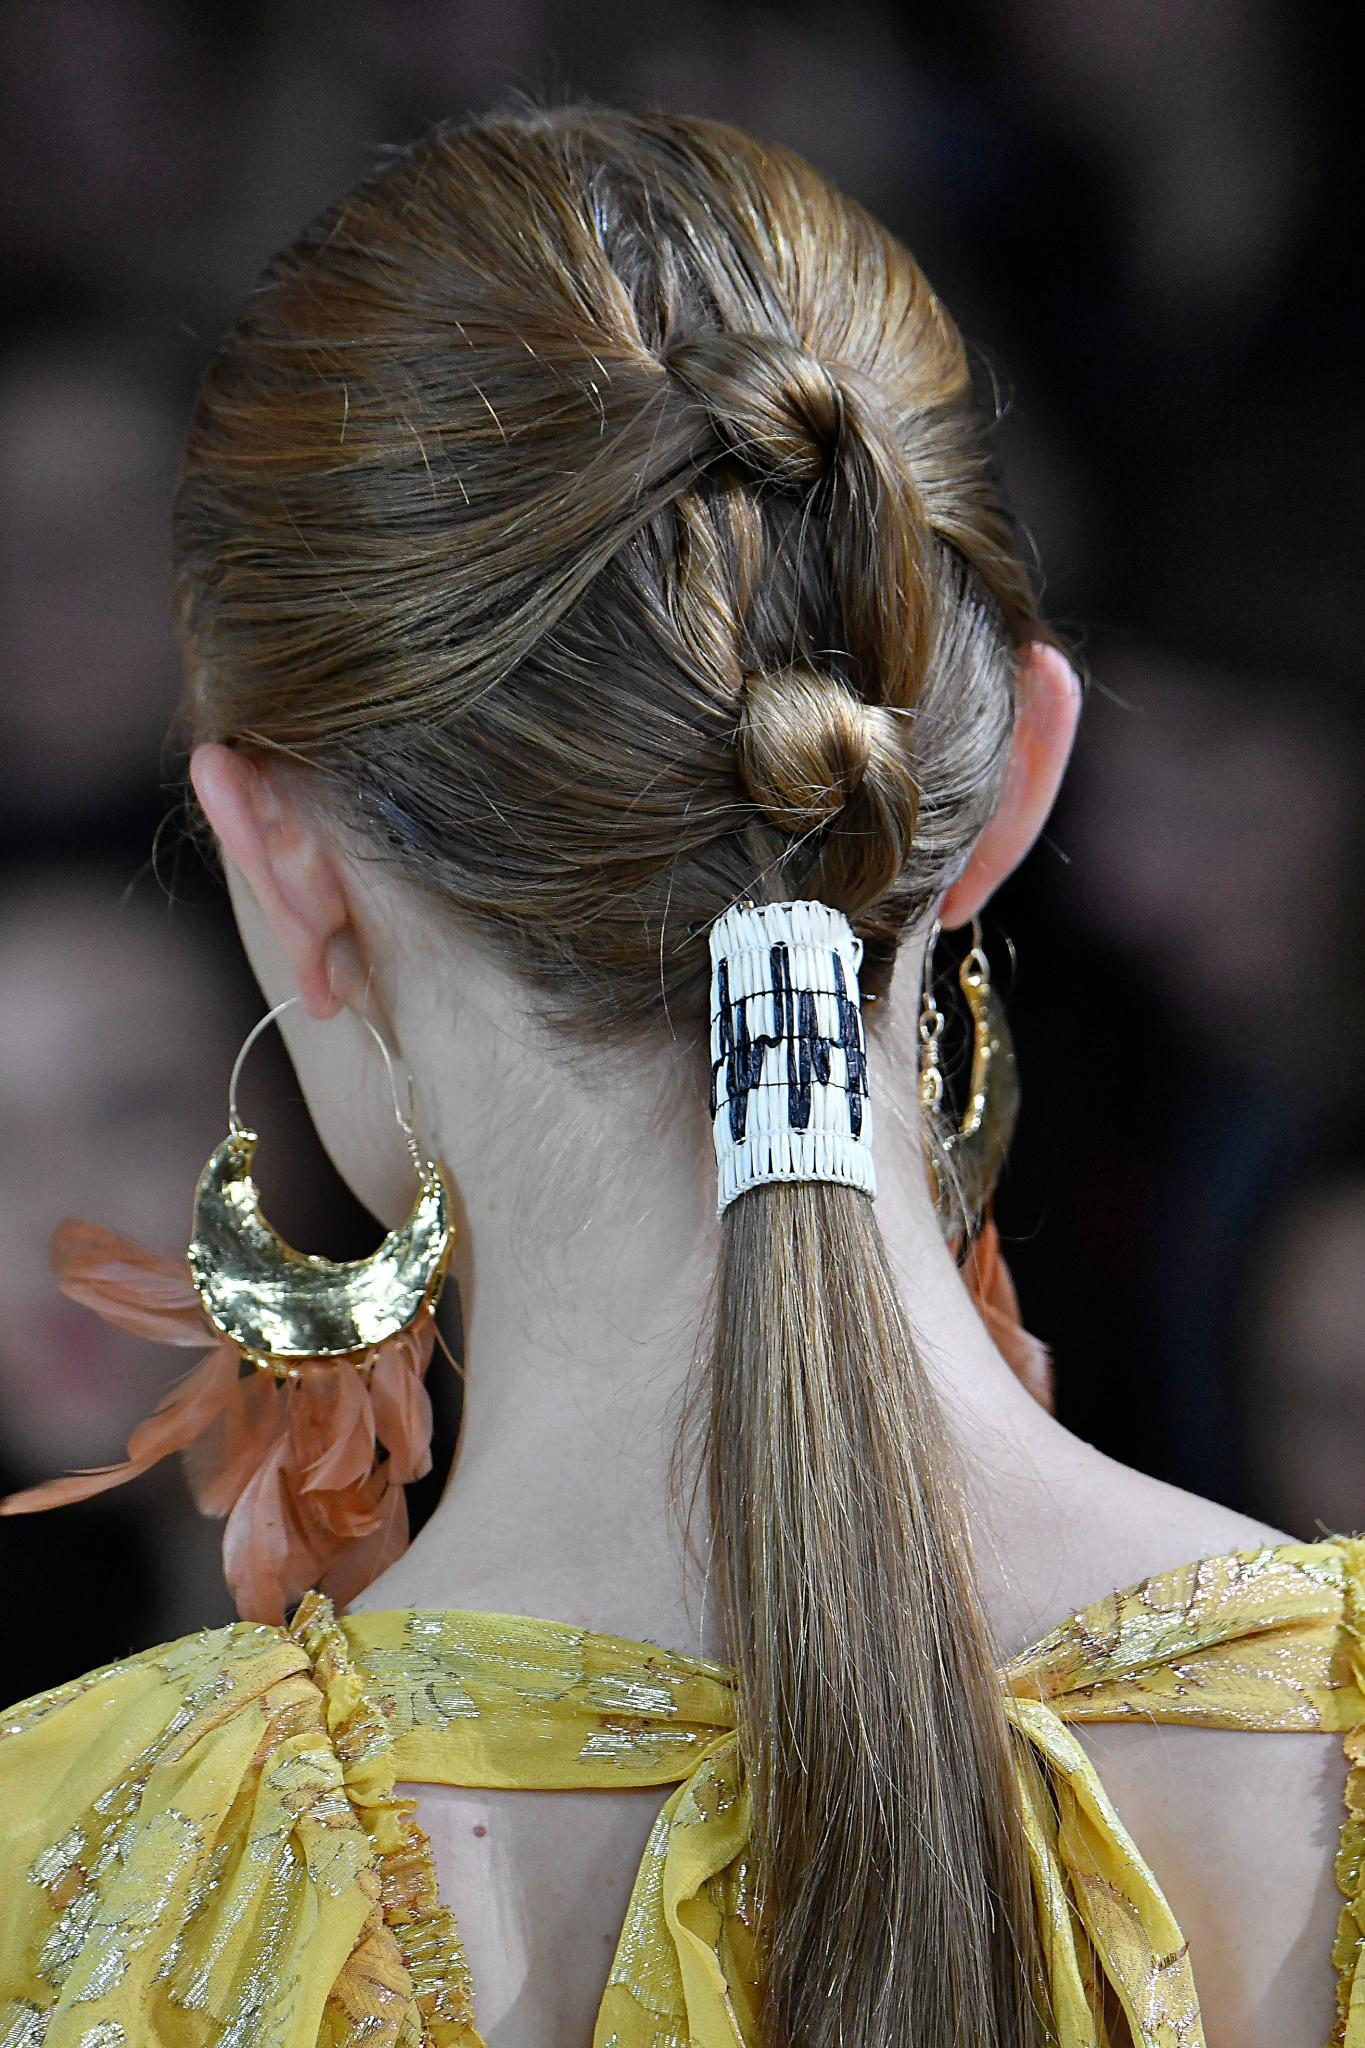 NYFW SS19: Back shot of a model on the Ulla Johnson runway with a knotted light brown medium ponytail,complete with a wrap accessory, wearing big hoop earrings